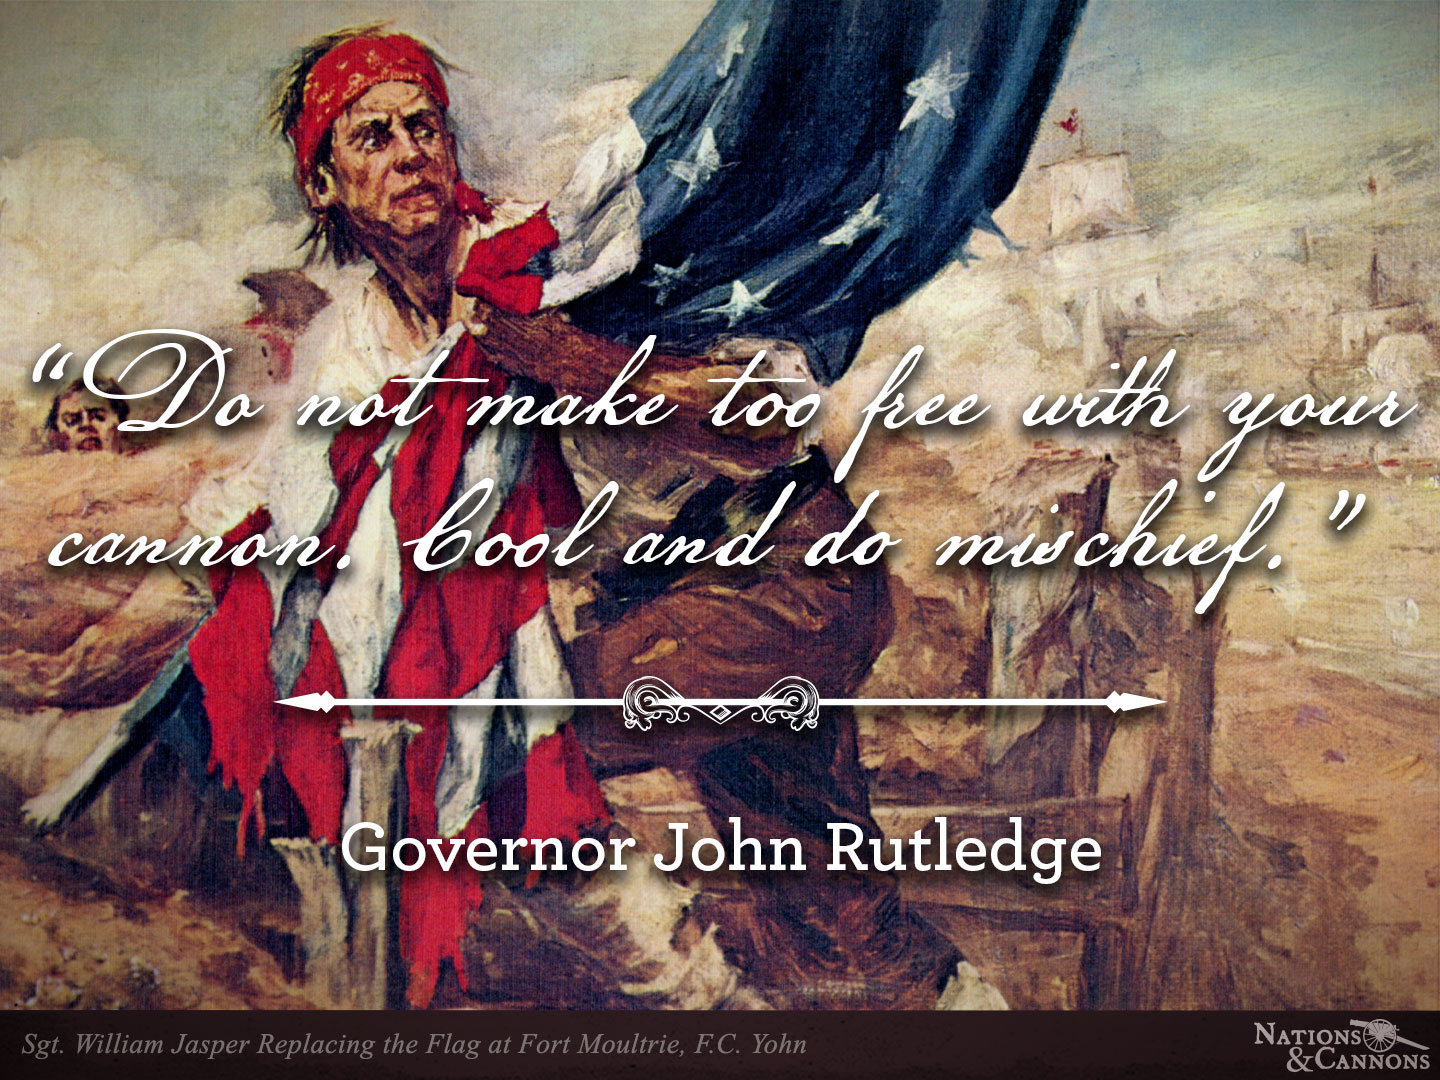 """""""Do not make too free with your cannon. Cool and do mischief."""" -John Rutledge [1440×1080]"""